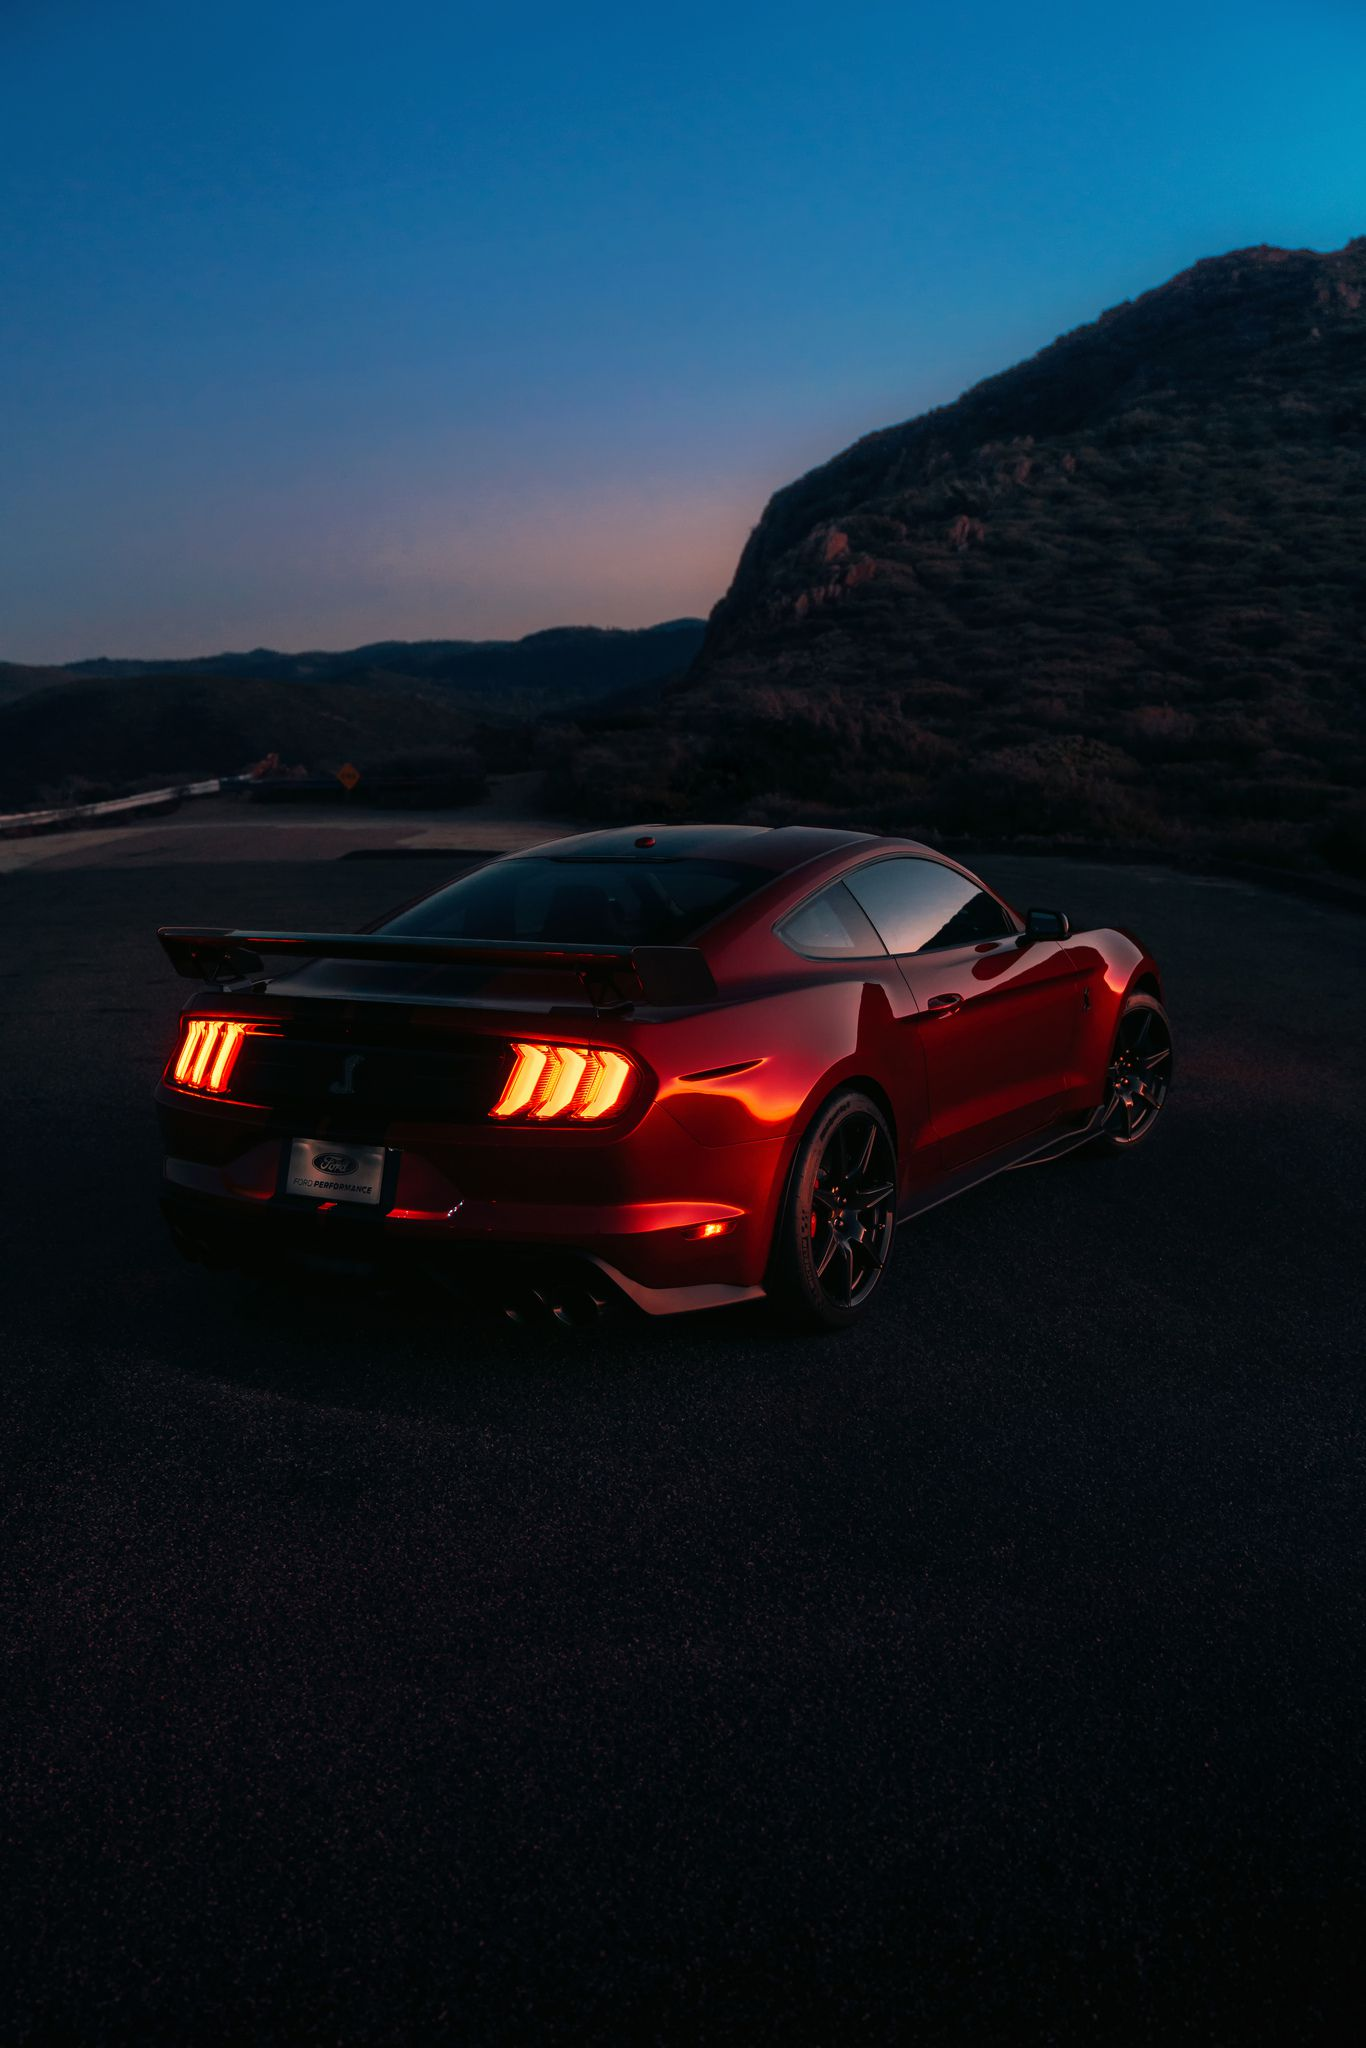 2020 Ford Mustang Shelby GT500 - at night